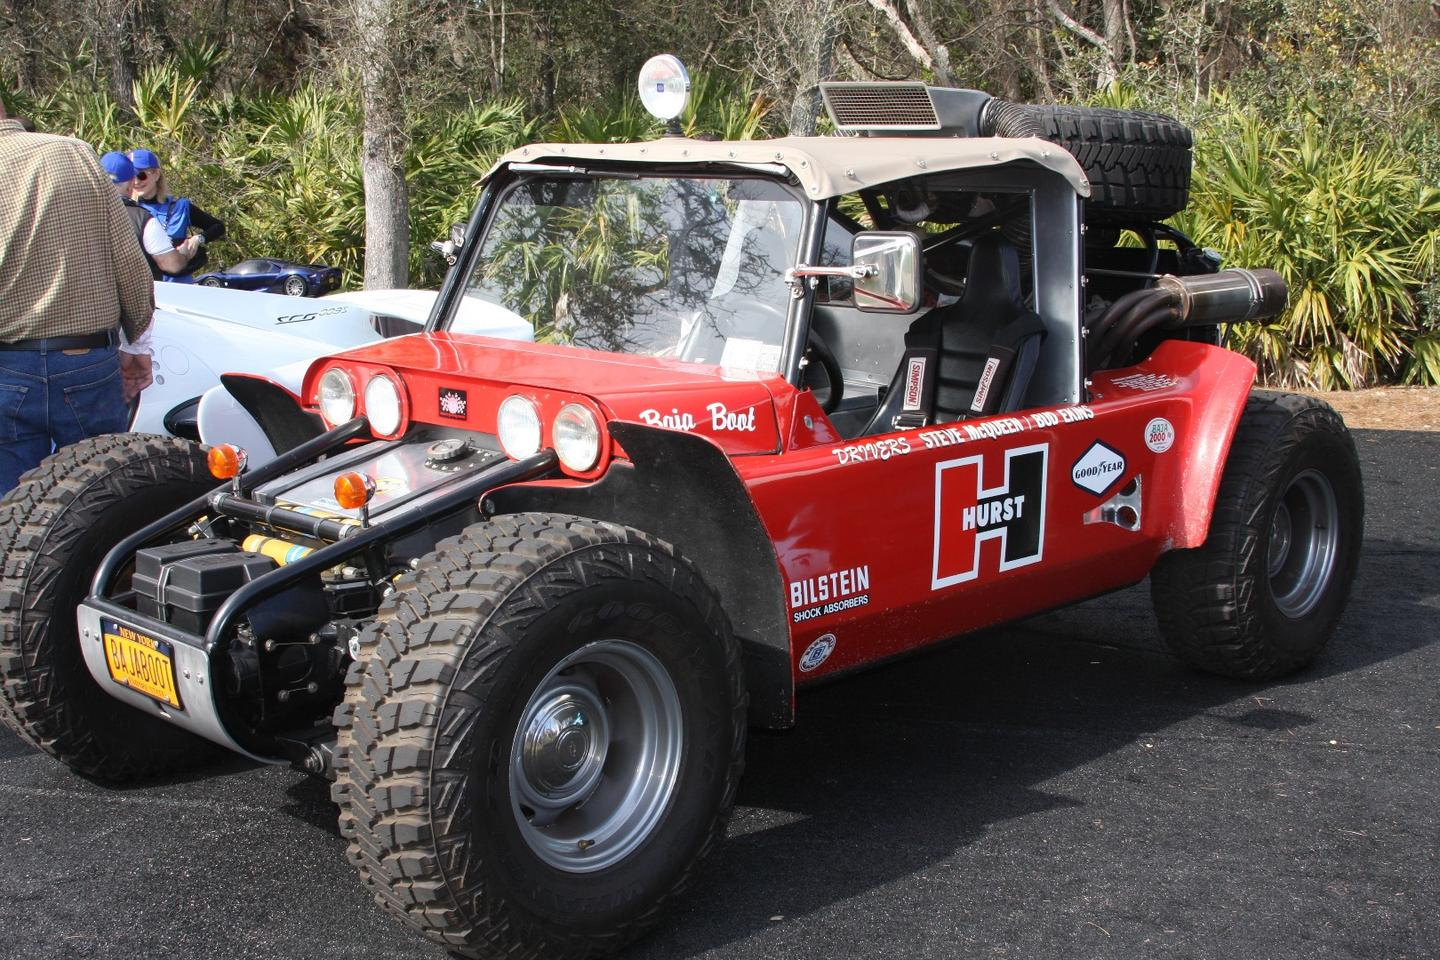 History in the flesh. This car was built for the1967National Off-Road Racing Association's 849-mile race dubbed the Mexican 1000. The race would go down in history as the first Baja 1000. Built by Vic Hickey with help fromGM, this purpose-built racing buggyused a 450-hp 350 cubic-inch V8 and GM Hydra-Matic auto,4-wheel discs, front and rear independent Torsion Bar Suspension and only got around 25 percentof the distance. Thenactor/racer Steve McQueen and Bud Ekins bought it and raced it and two years later, it won.The car was purchased two years ago at Pebble Beach by film director/car aficianadoJames Glickenhaus (Scuderia Cameron Glickenhaus) who made it street legal. Nice wheels, Mr Glickenhaus!!!